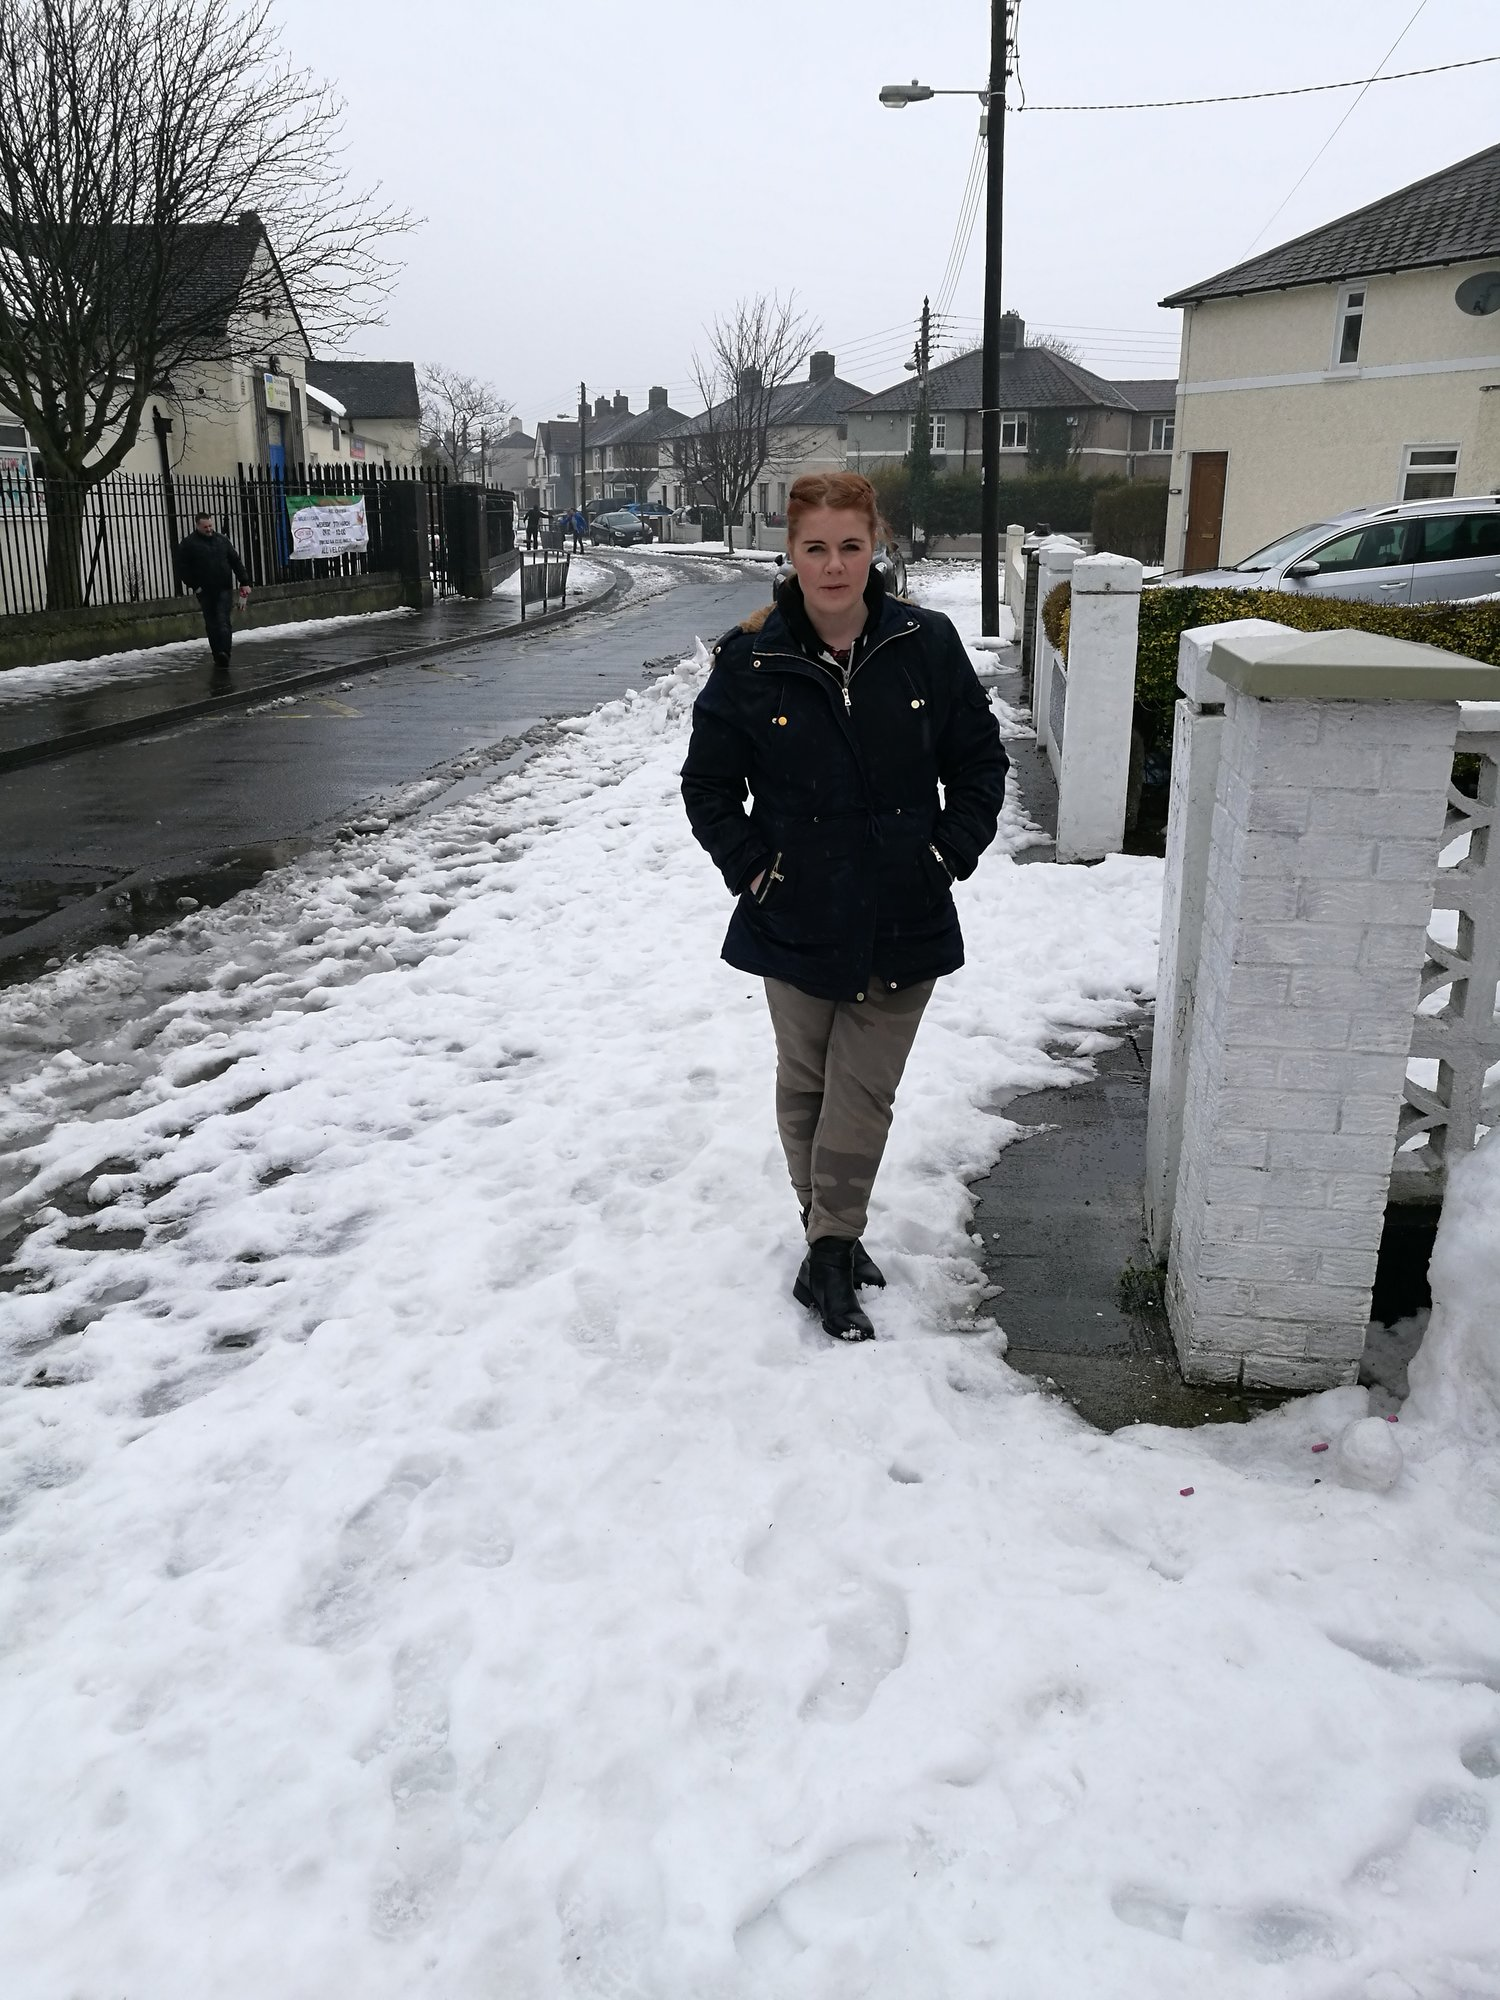 Green Party Candidate Calls for Footpath Clearance Standards after Big Snow